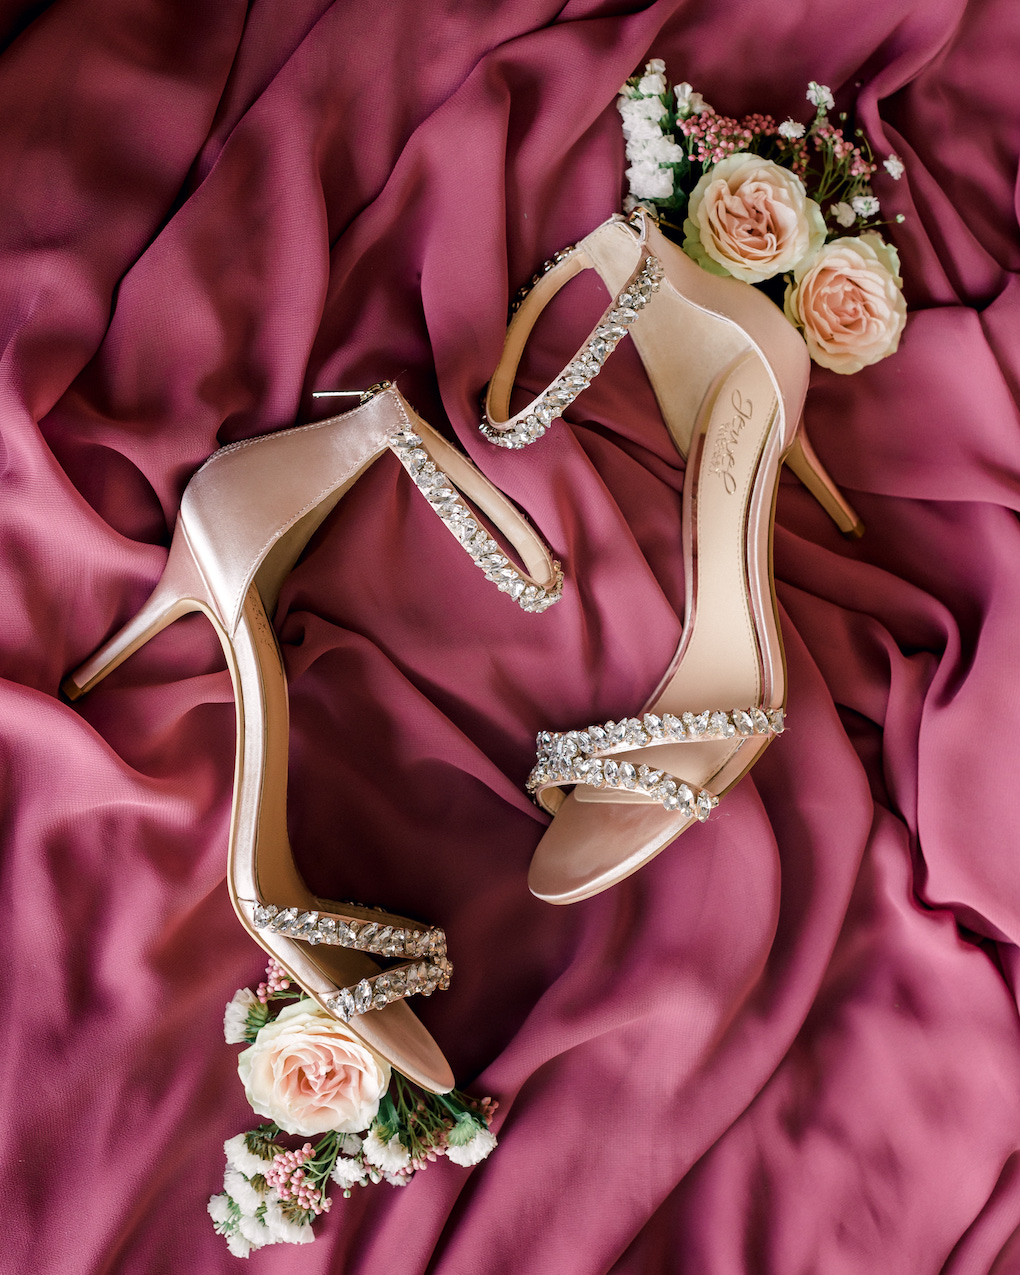 Wedding shoes with bling: Romantic Delicate Summer Wedding in Pittsburgh planned by Exhale Events. See more at exhale-events.com!